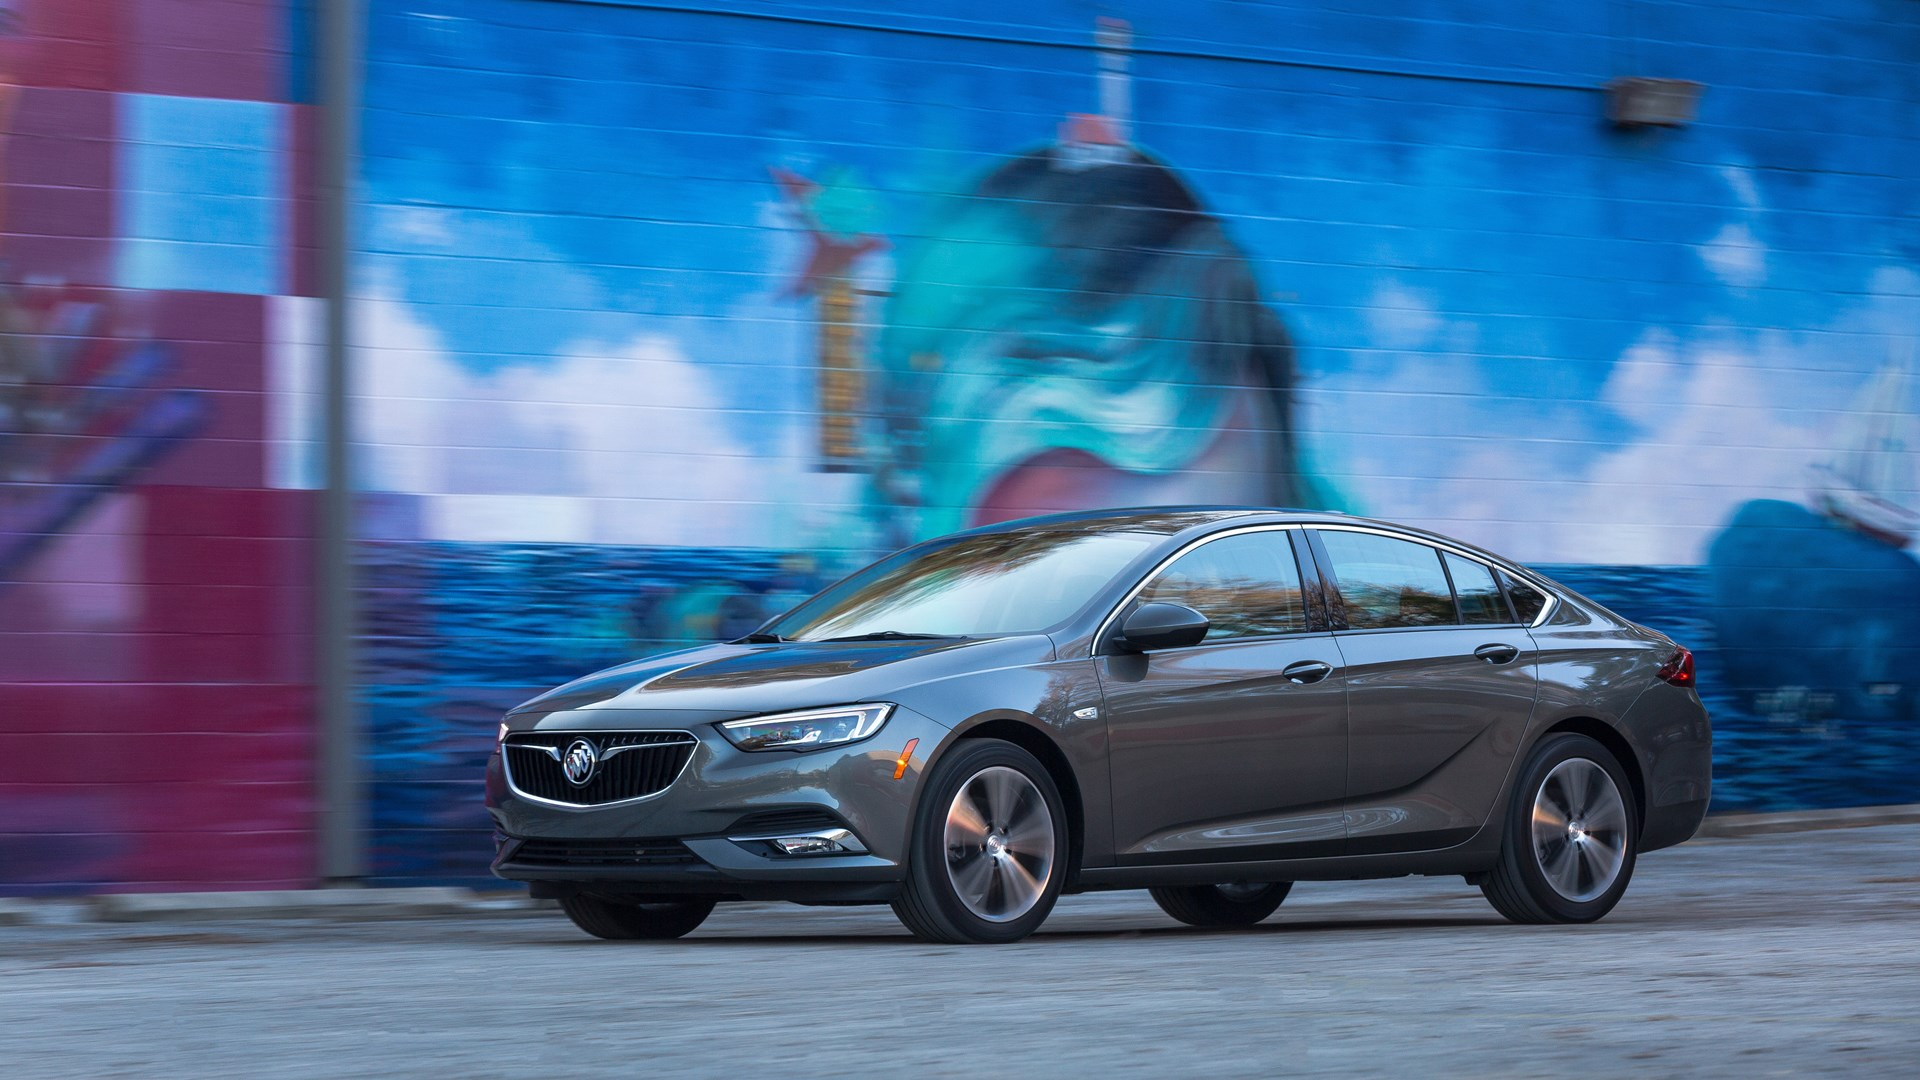 Buick Regal Discontinued After 2020 Model Year | Autotrader.ca New 2022 Buick Regal Discontinued, Release Date, Engine